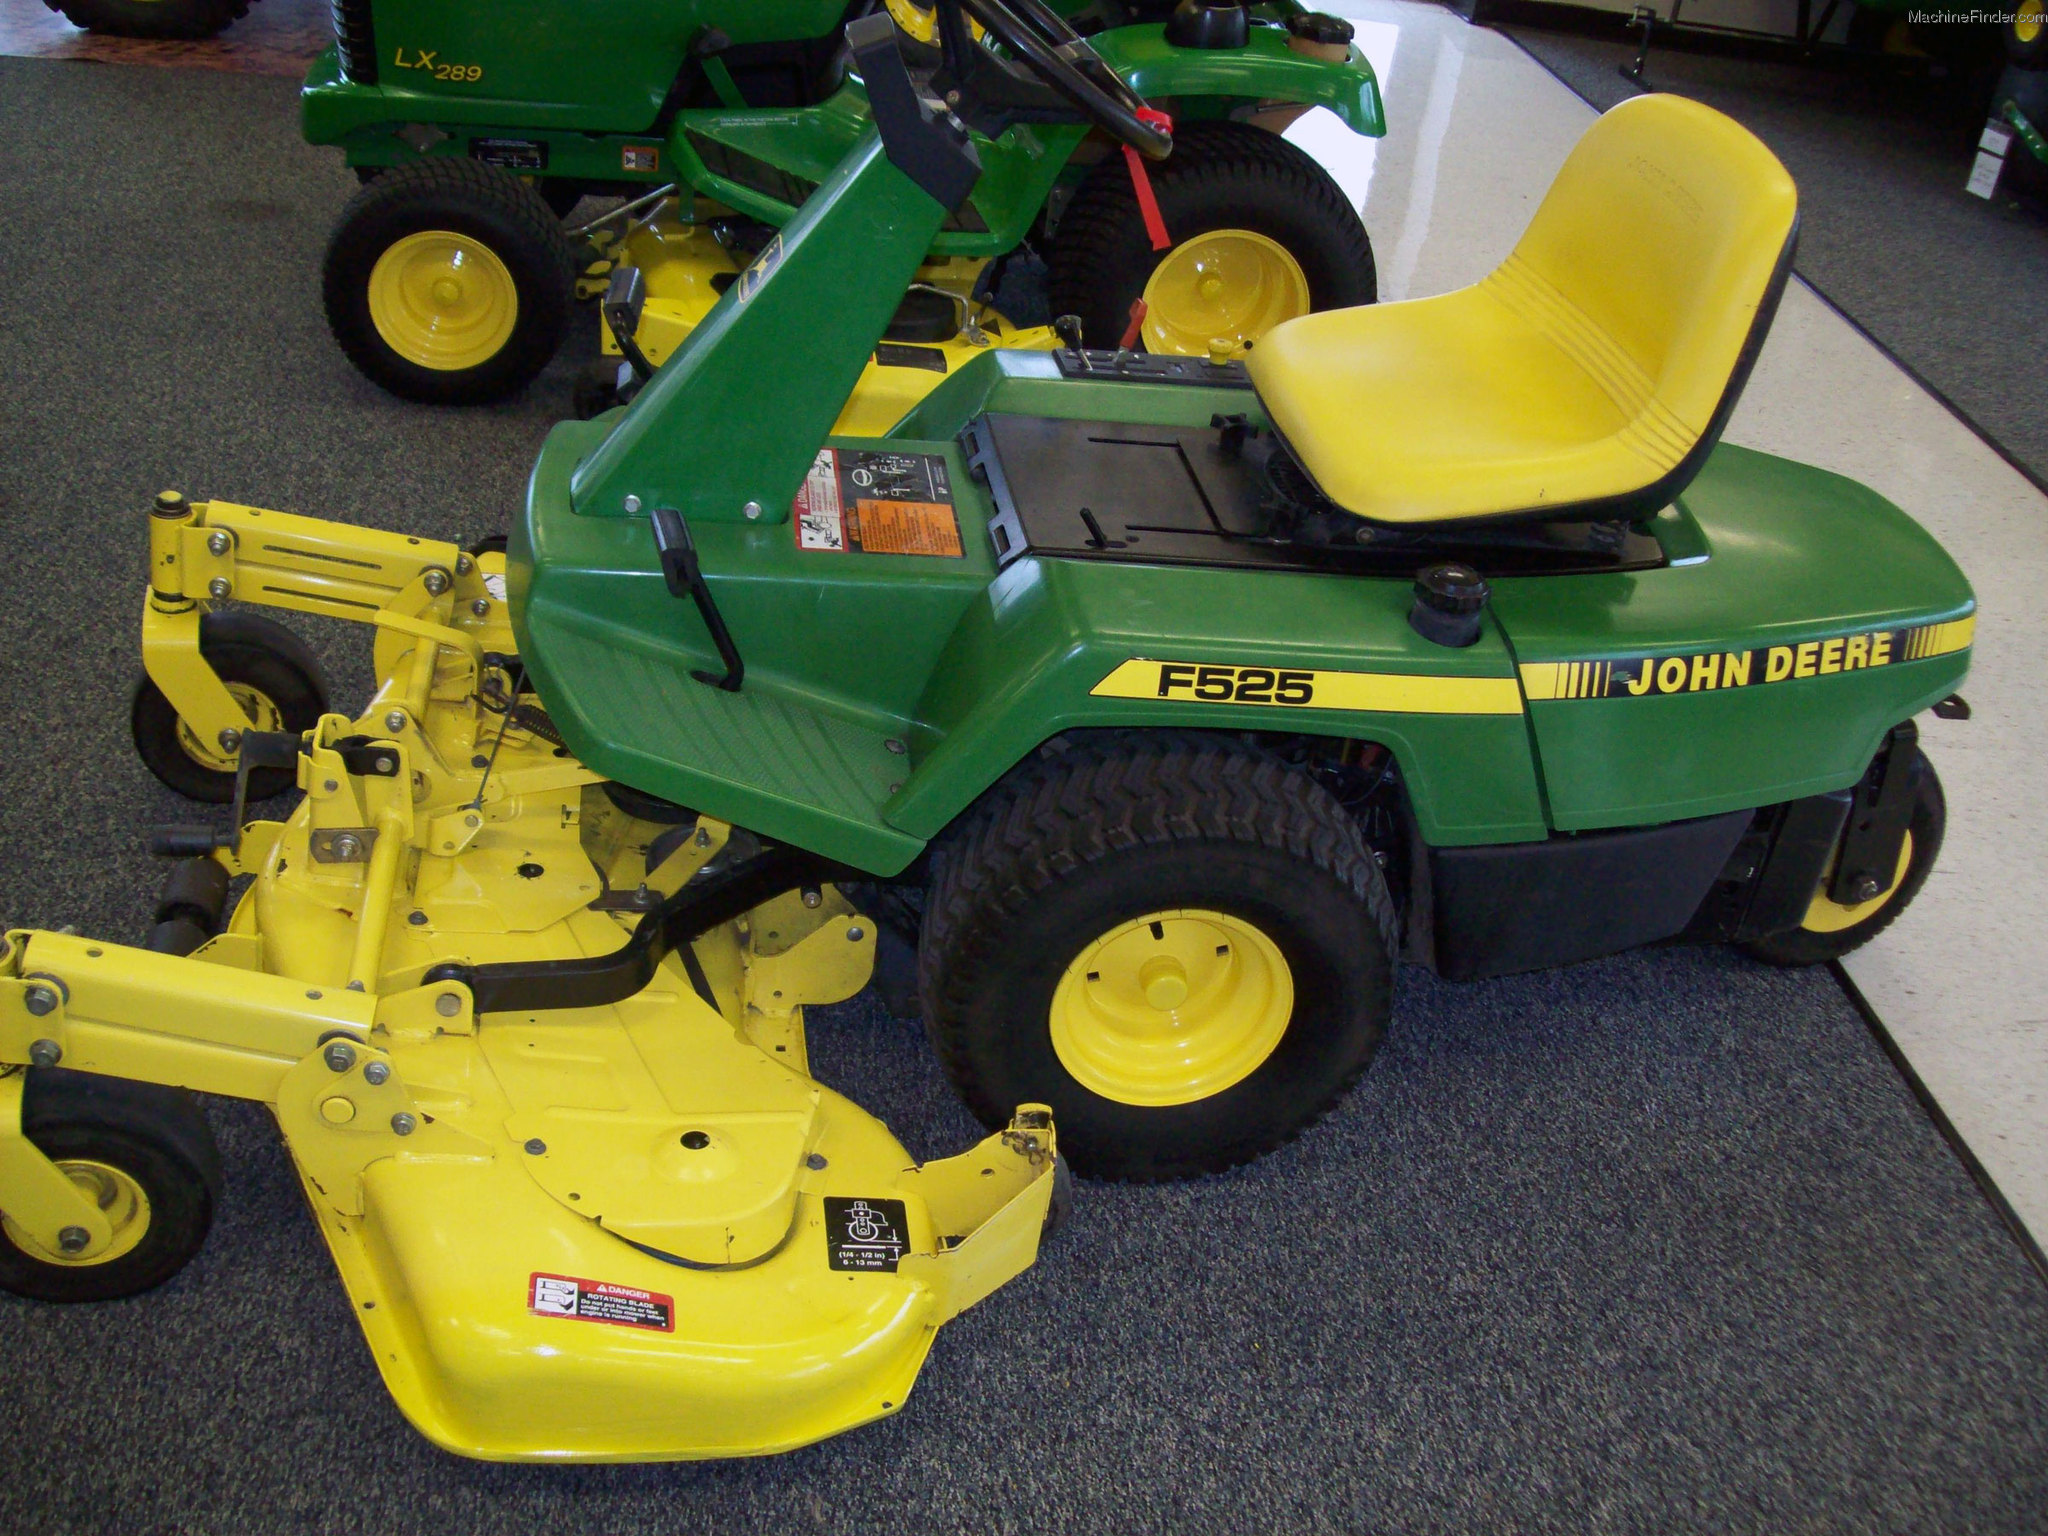 john deere f525 mower wiring diagram gy6 for lawn tractor get free image about